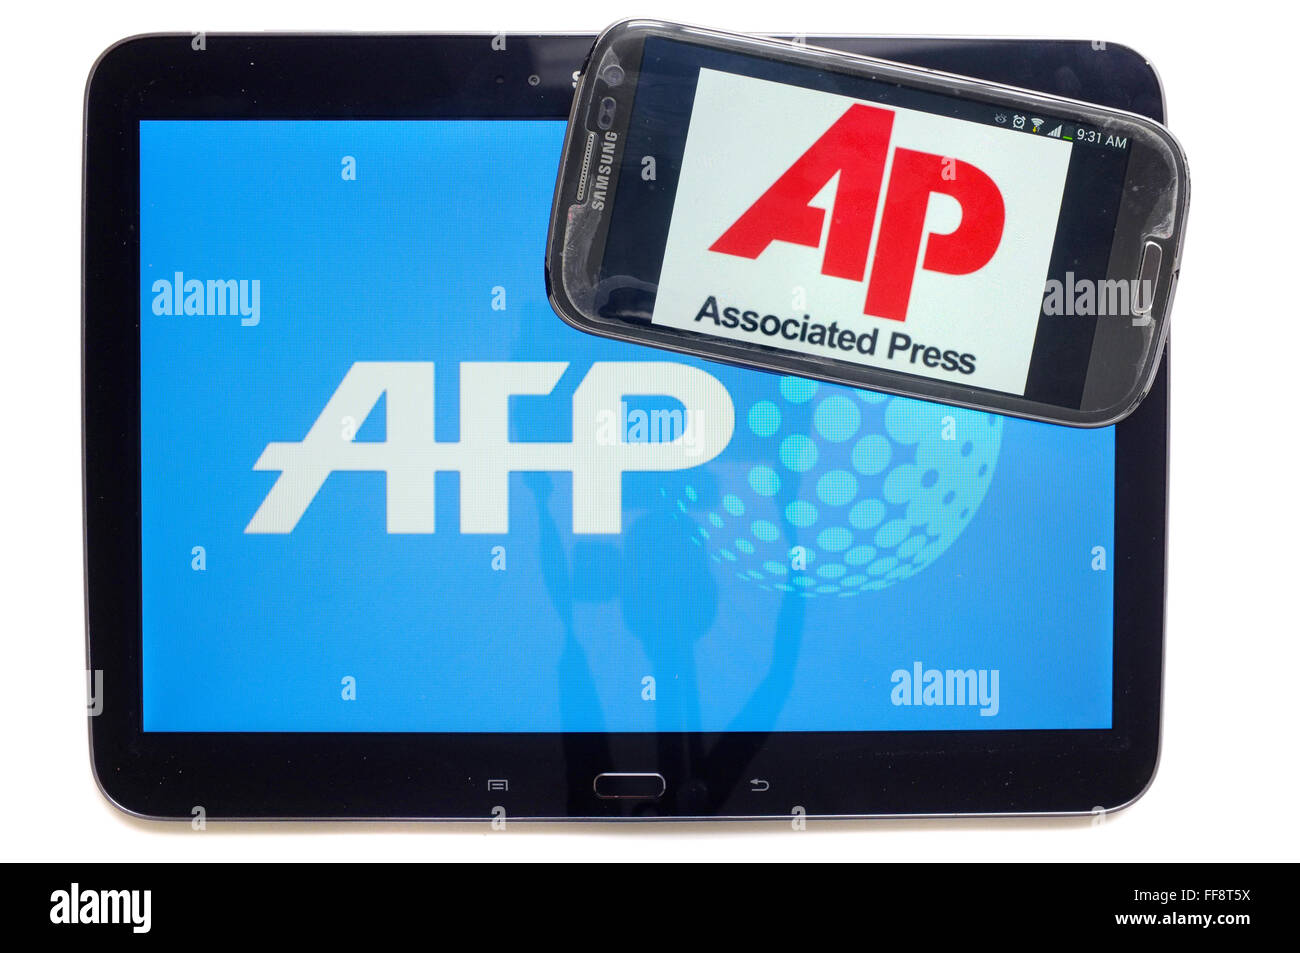 The AP logo on a smartphone screen on top of a tablet displaying the AFP logo photographed against a white background. - Stock Image